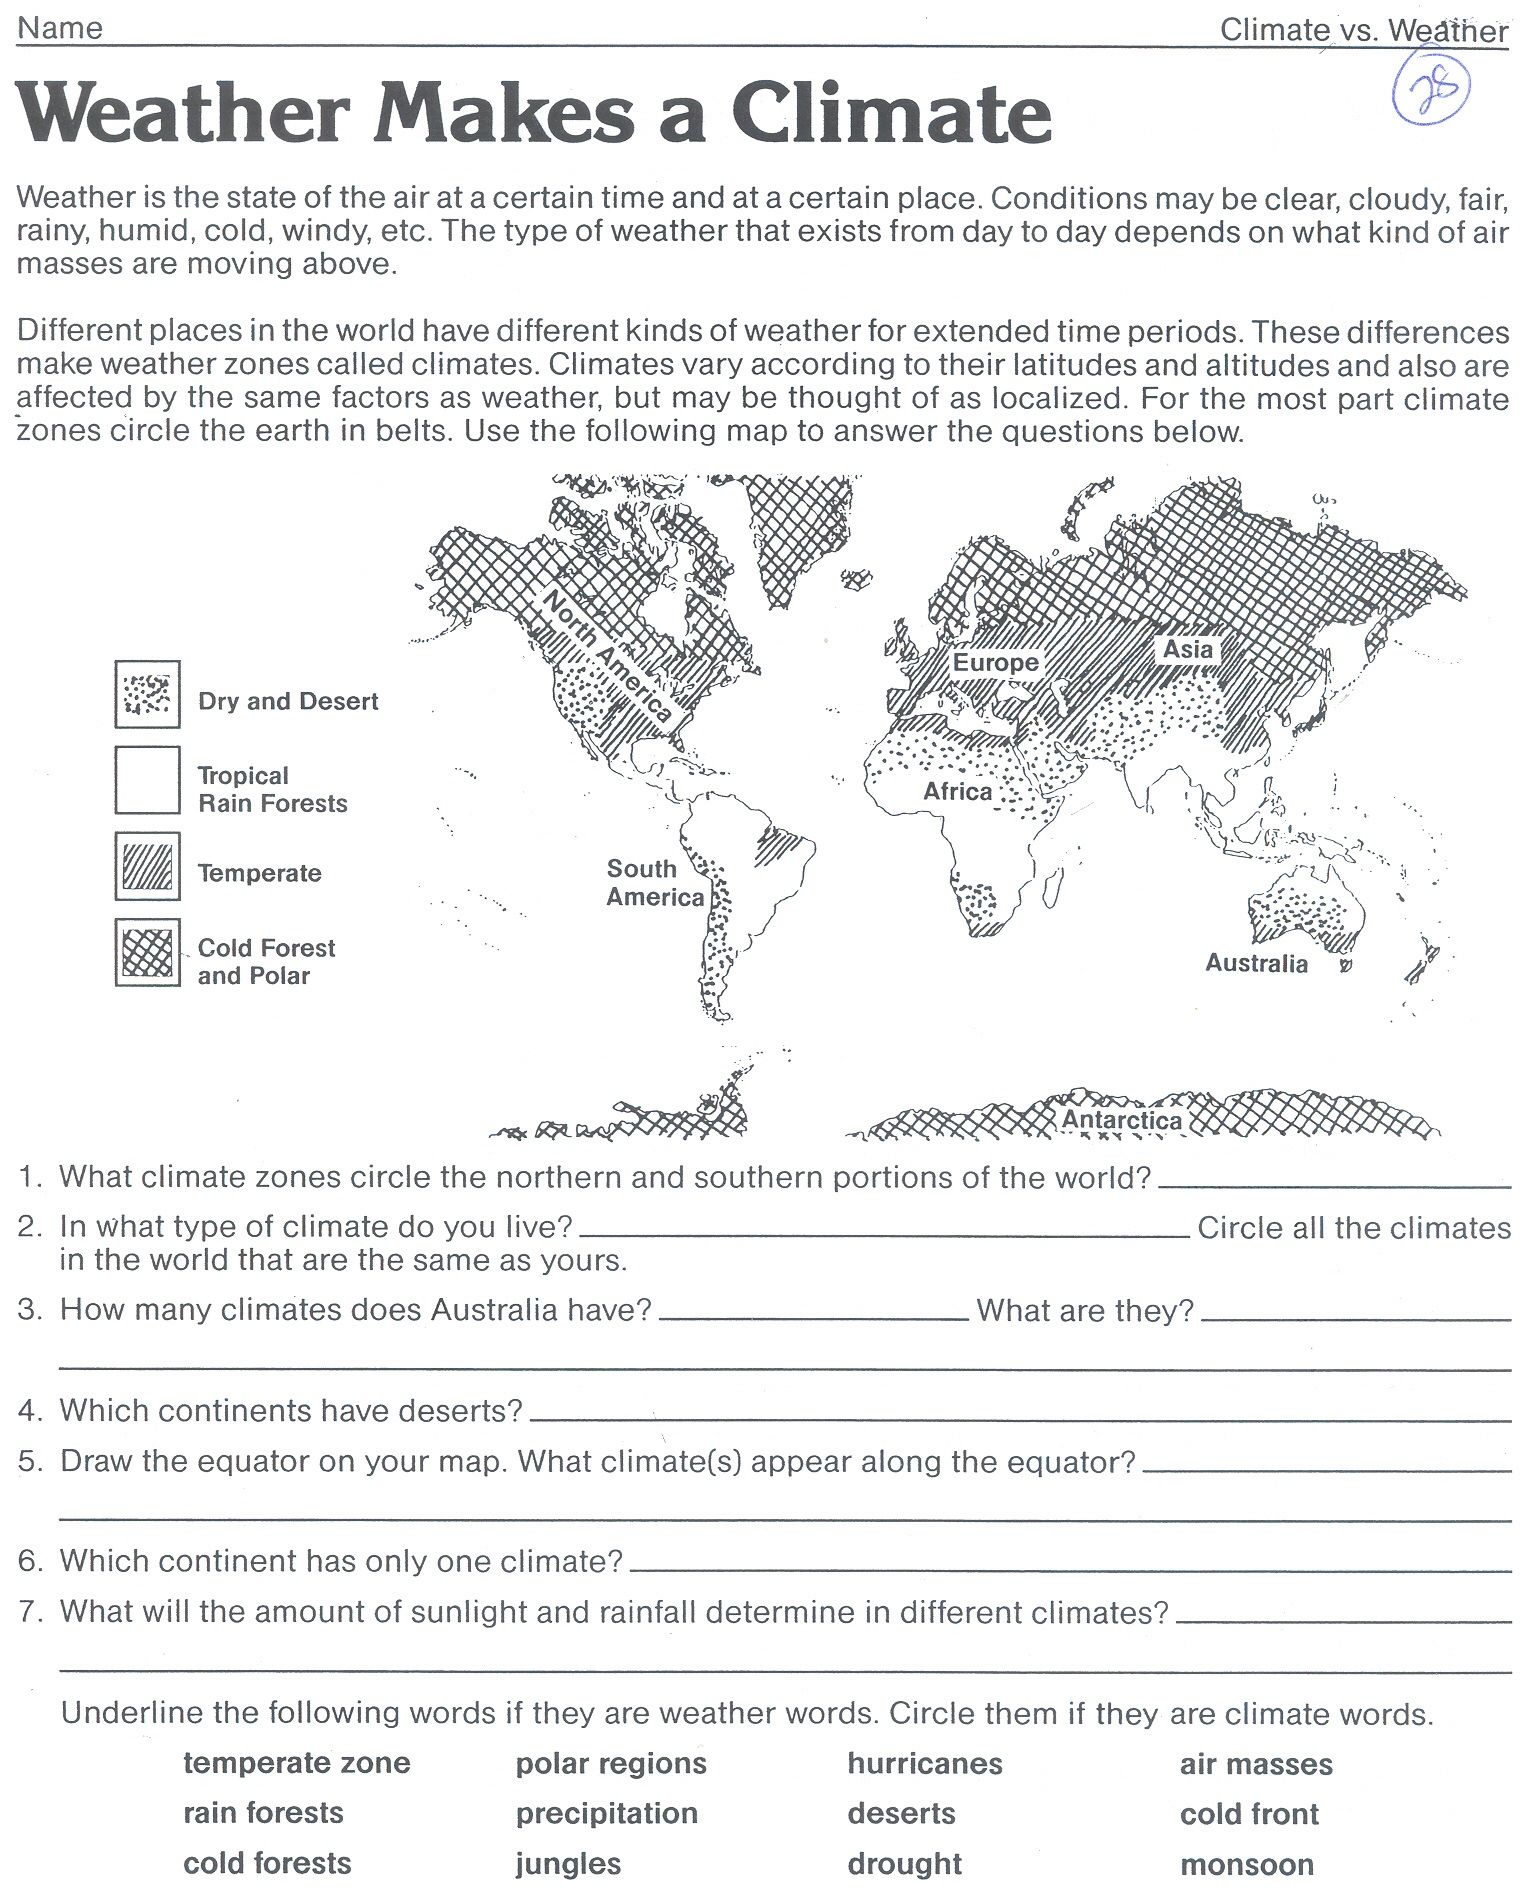 worksheet 7th Grade Geography Worksheets weather makes a climate worksheet science pinterest worksheets worksheet